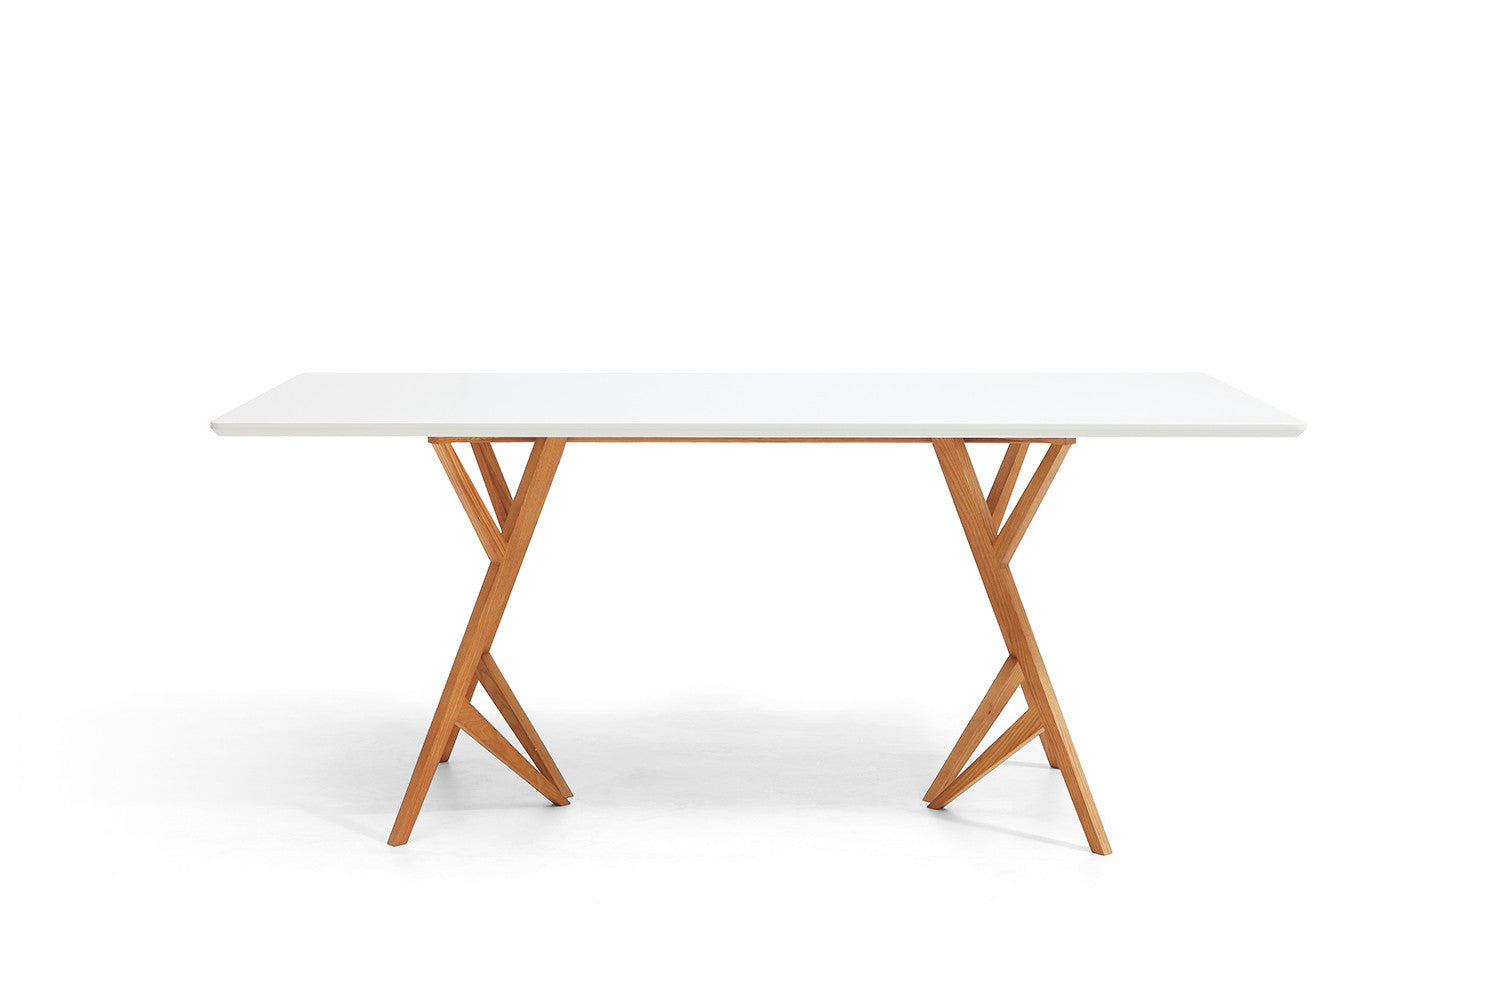 Table de salle manger design scandinave vispa dewarens - Table de salle a manger design ...